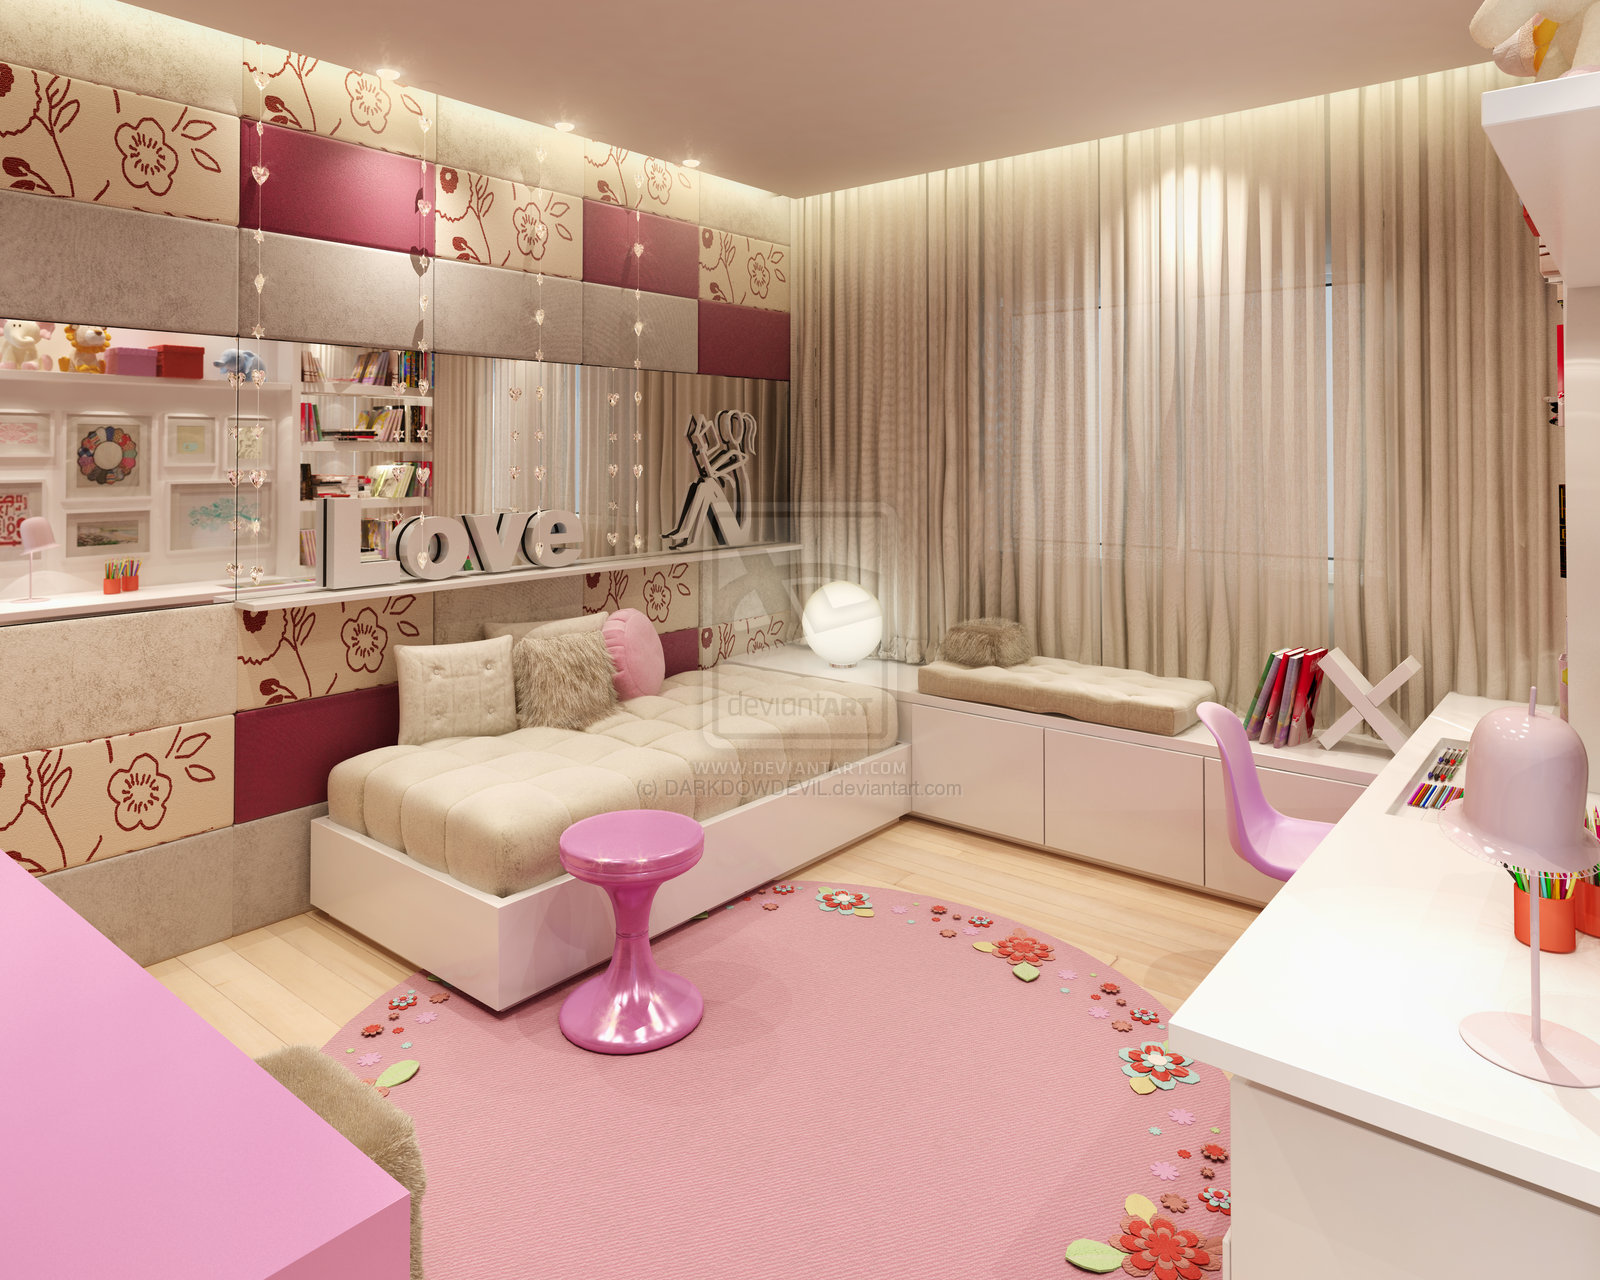 Girly bedroom design ideas wonderful - Bedrooms for girls ...